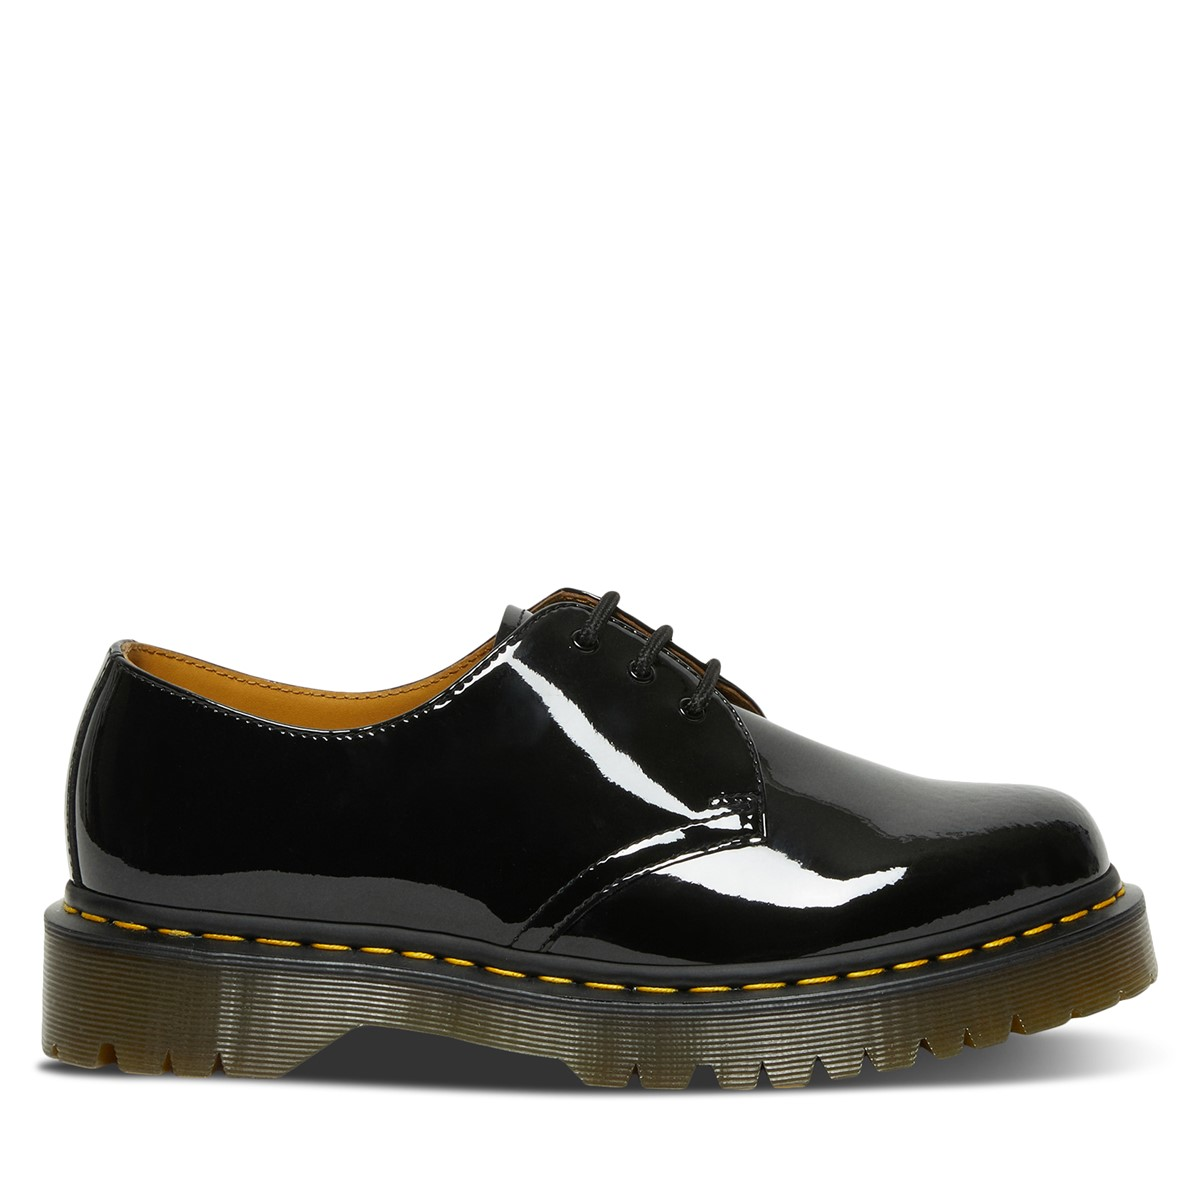 Women's 1461 Bex Patent Oxford Shoes in Black